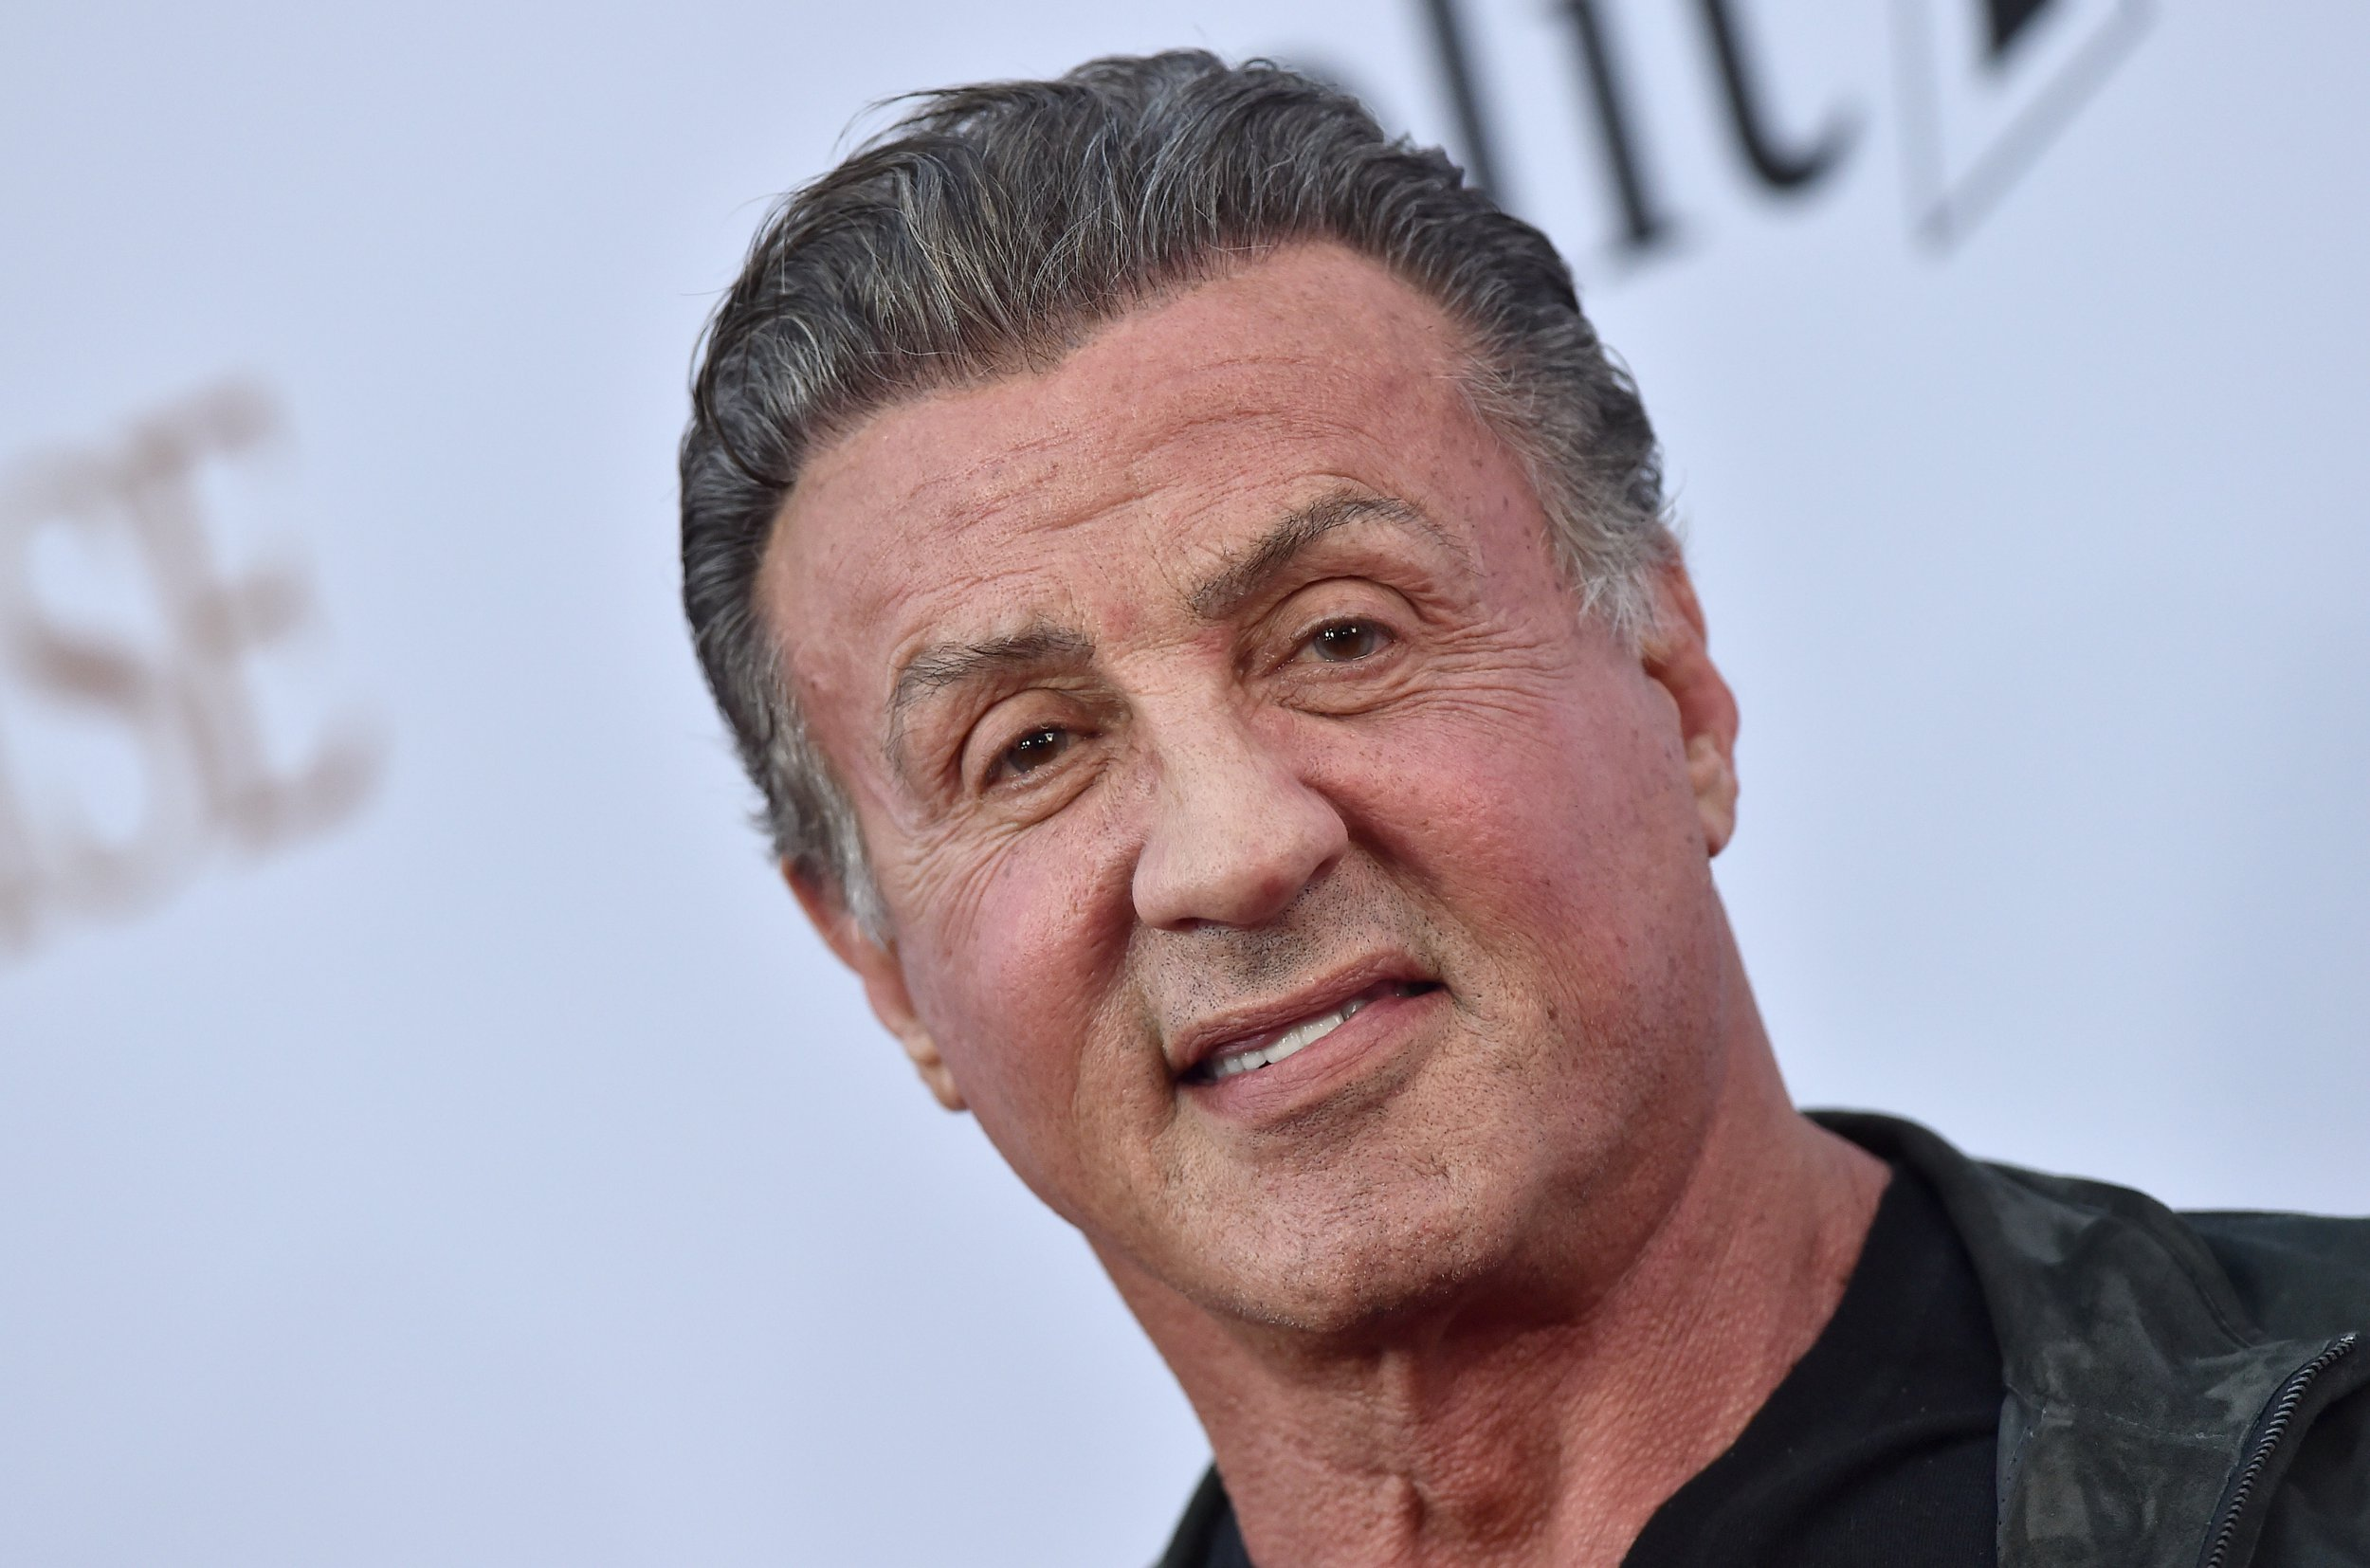 'Is Sylvester Stallone dead?': Sly reassures fans he is 'alive and well' after death hoax